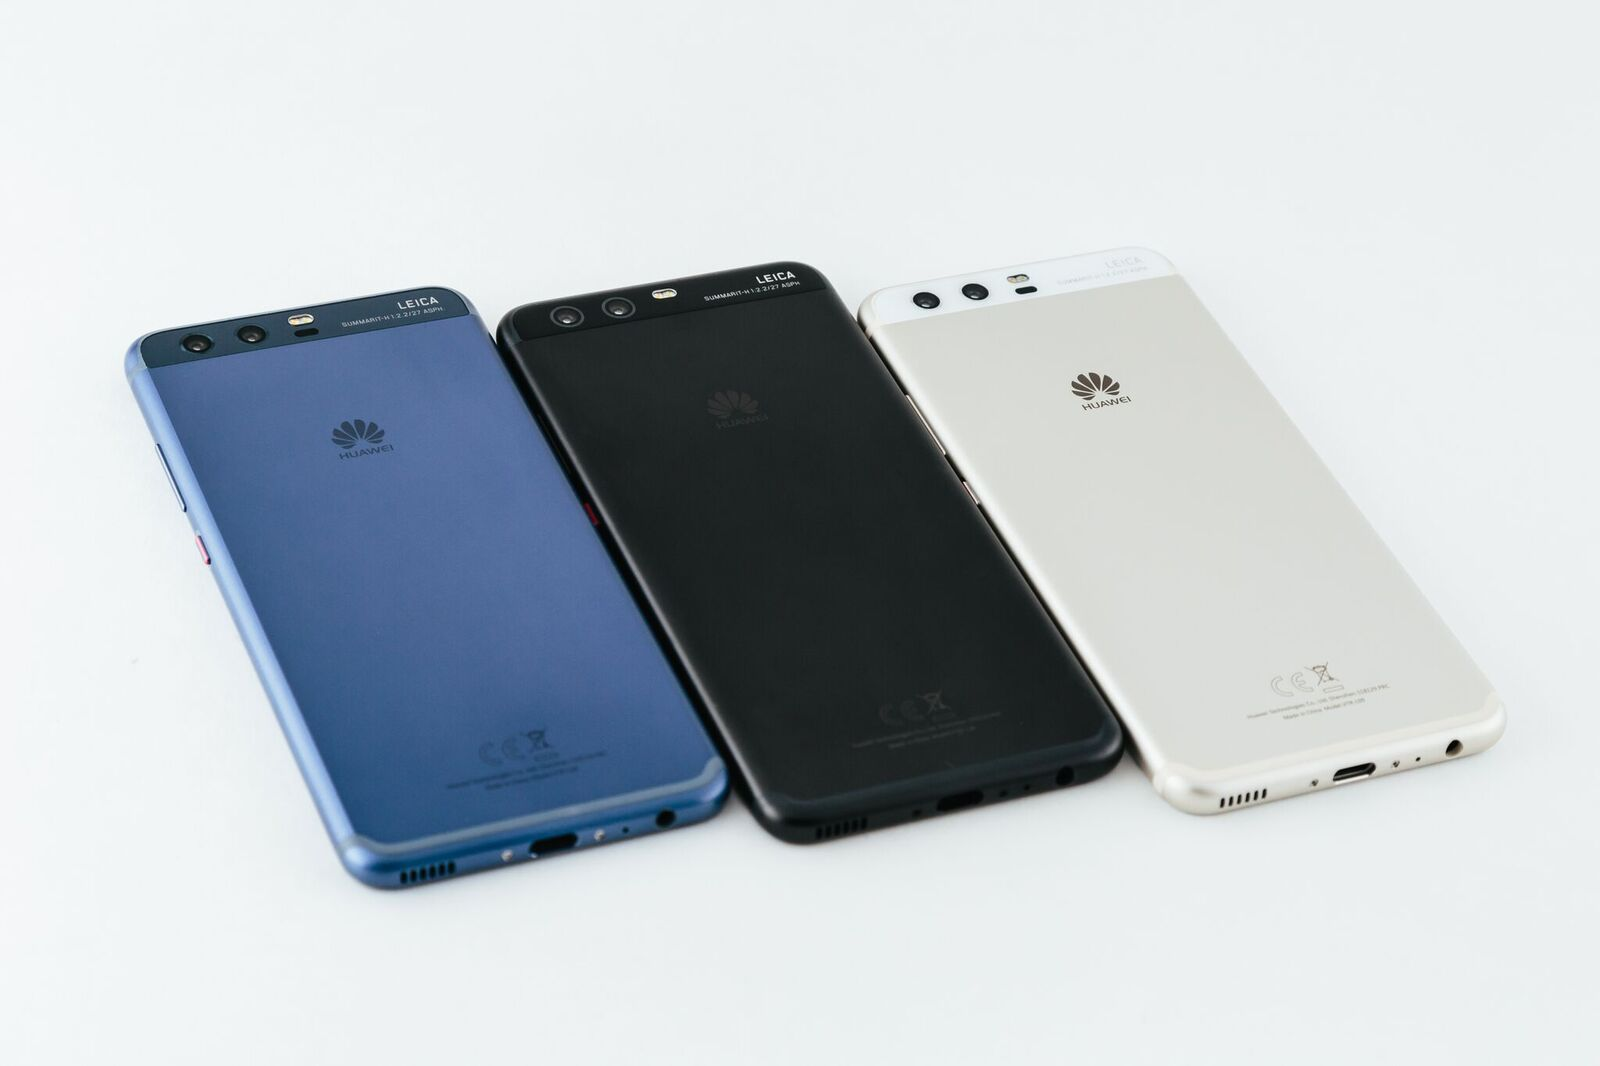 huawei p10 and p10 plus official 5 2 and 5 5 displays leica dual cameras and plenty of colors. Black Bedroom Furniture Sets. Home Design Ideas